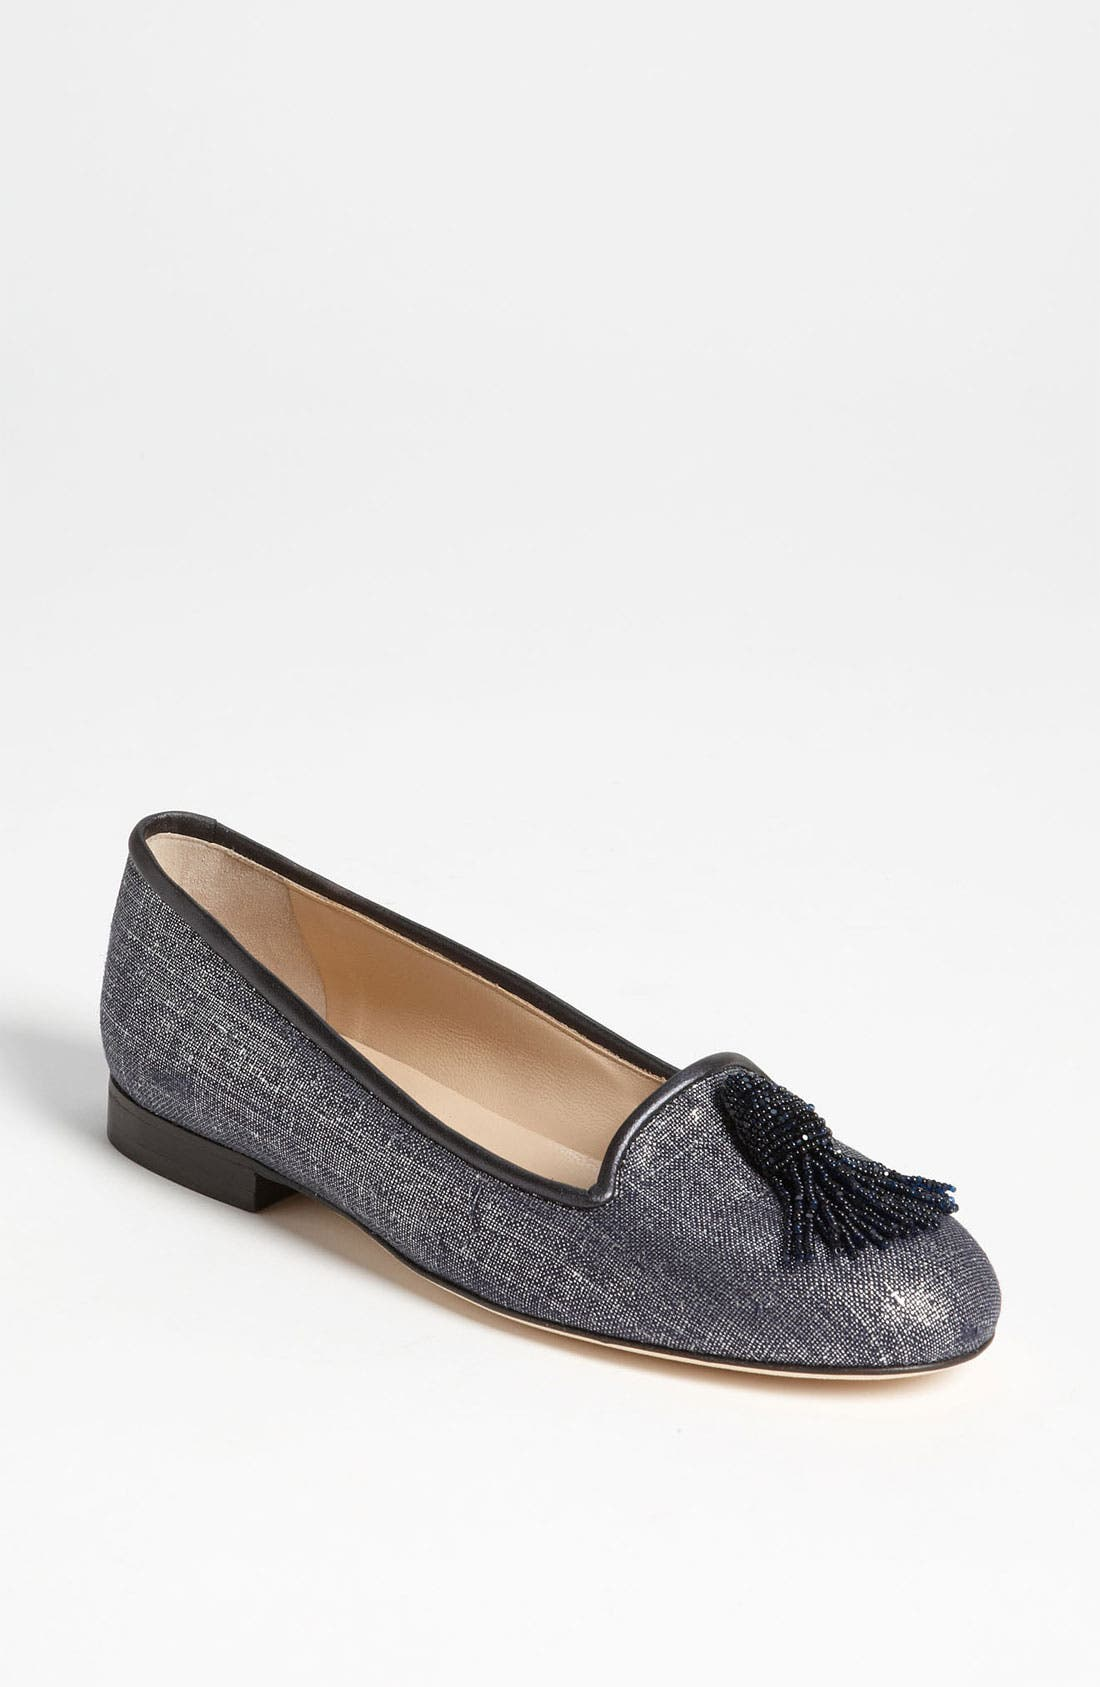 Alternate Image 1 Selected - Oscar de la Renta 'Ciciclo' Loafer